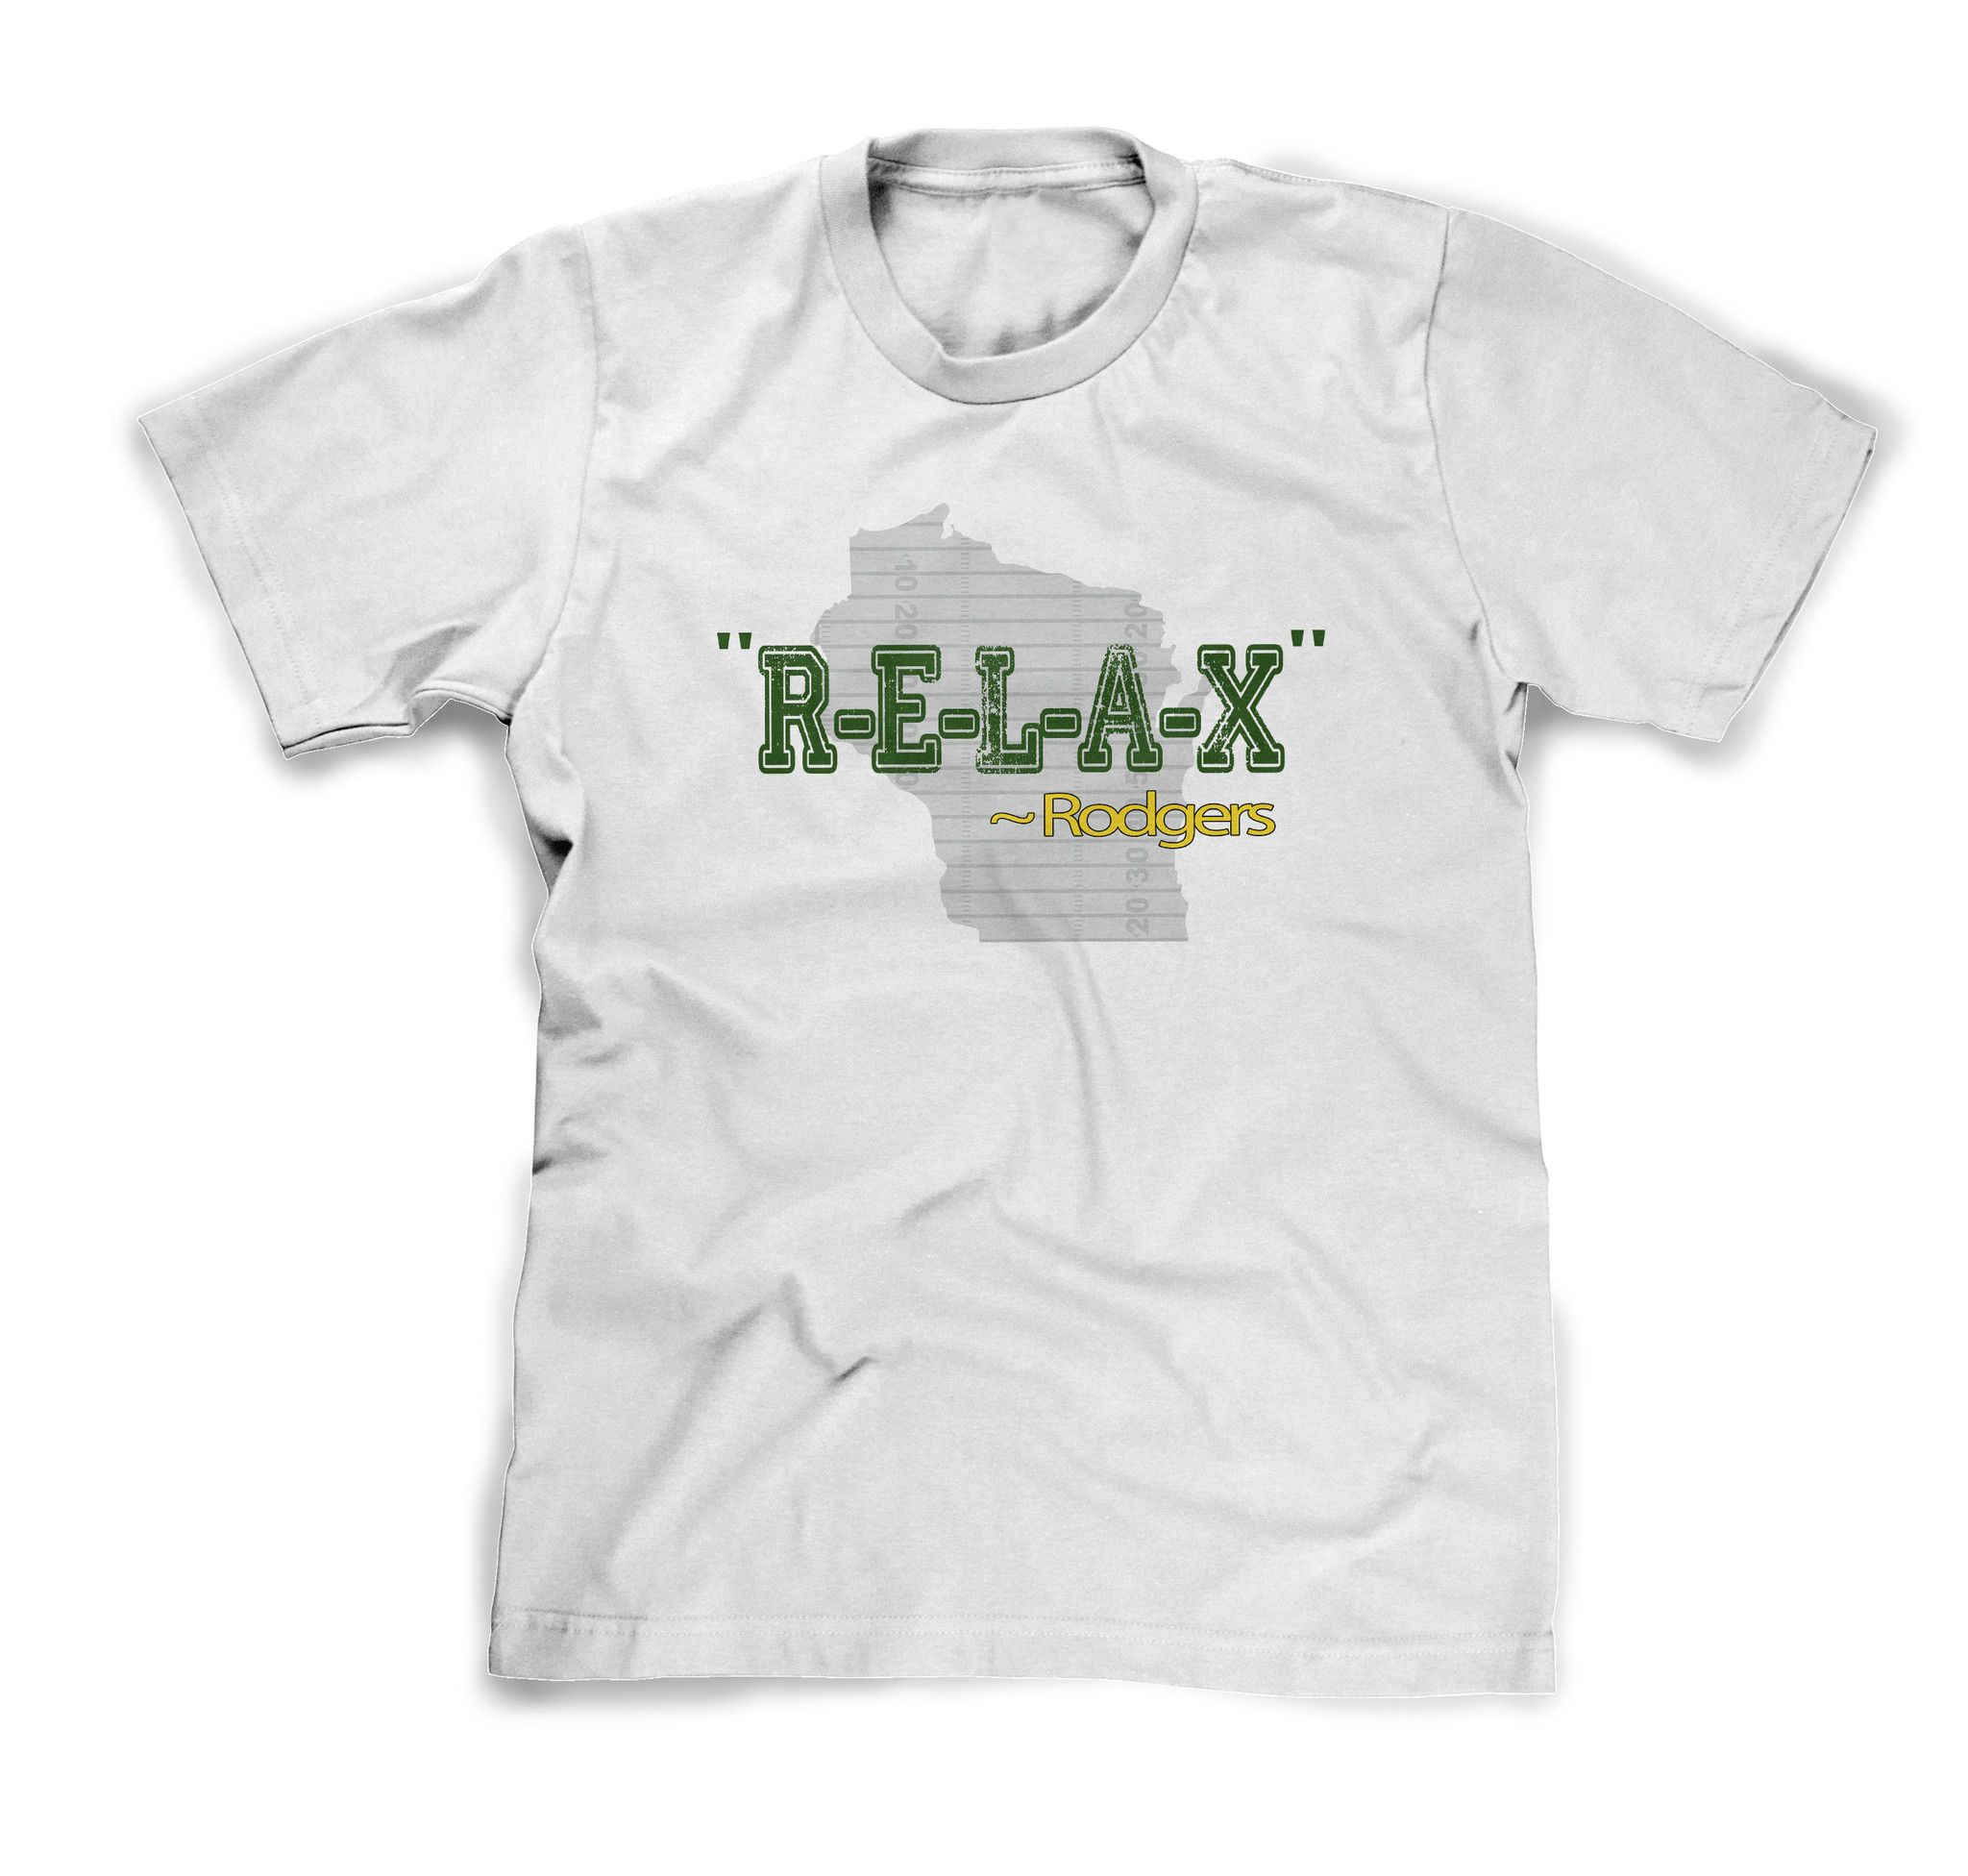 Relax Aaron Rodgers Tee In Yellow Or White Green Bay Packers Fan Shirt On Sale Now At Shirtsandwich Com With Images Native American T Shirts Novelty Shirts Fan Shirts